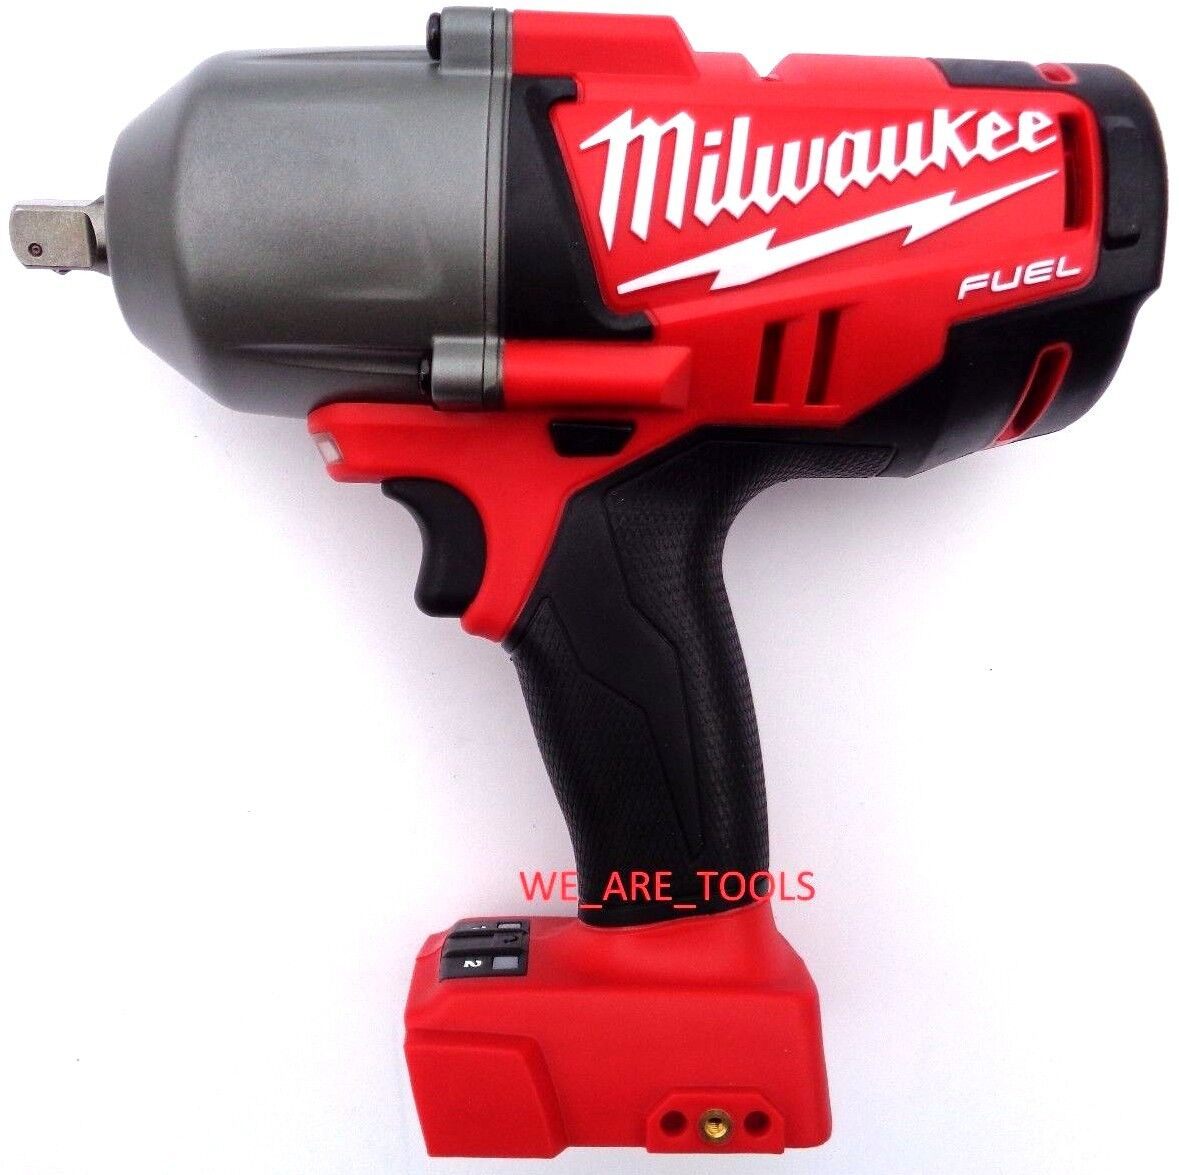 New Milwaukee FUEL 2762-20 18V 1/2